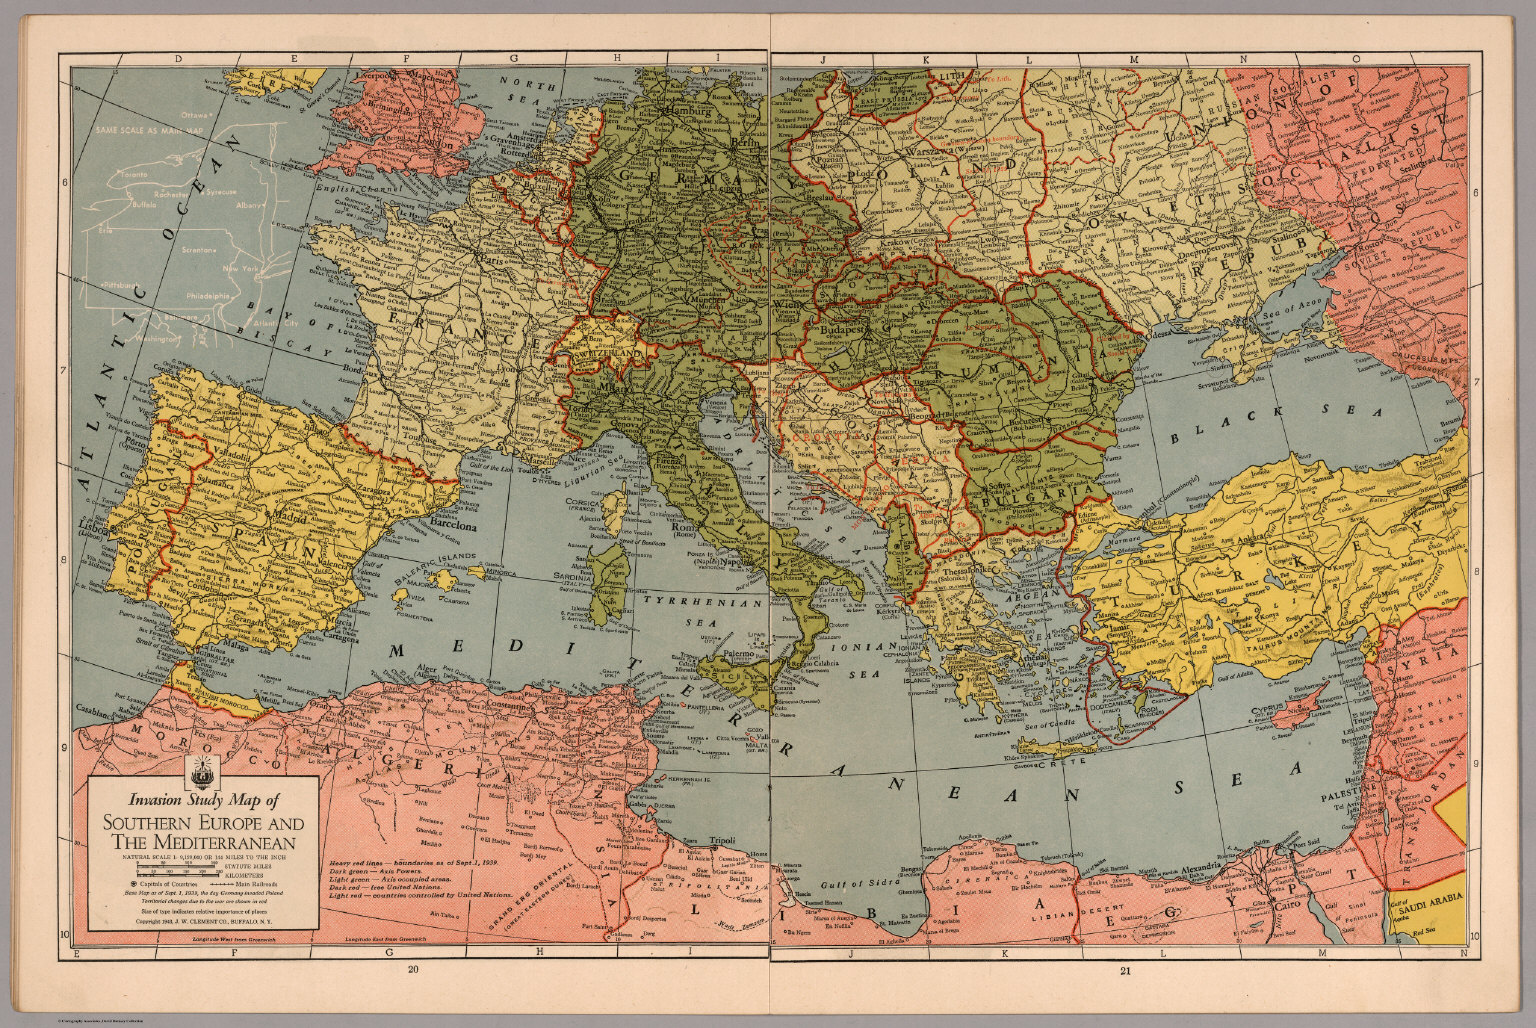 Invasion Study map of Southern Europe and Mediterranean   David     Invasion Study map of Southern Europe and Mediterranean